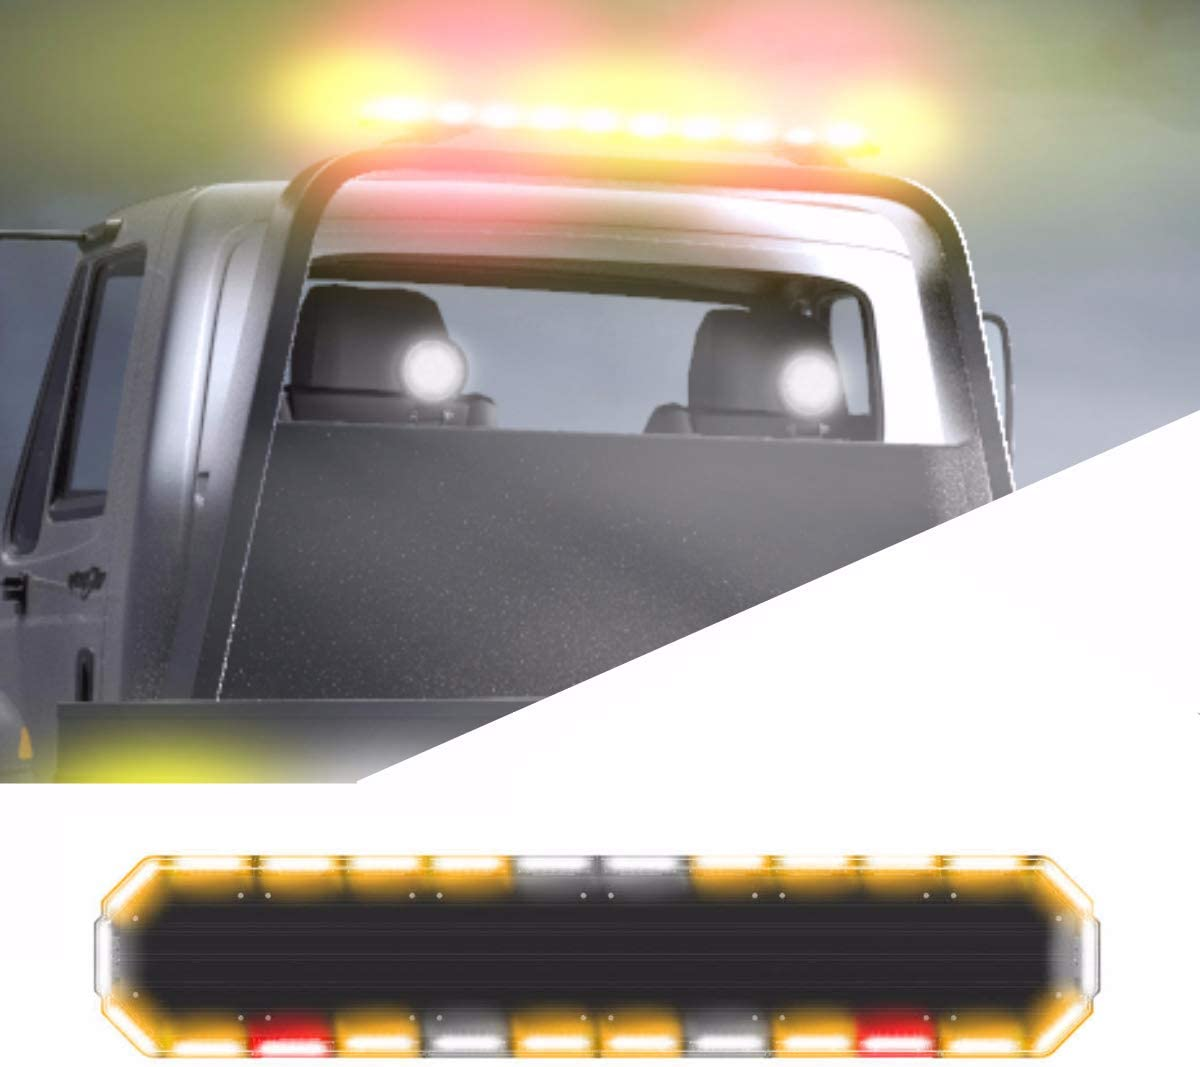 Tow Truck Light Bar Wiring Diagram from images-na.ssl-images-amazon.com